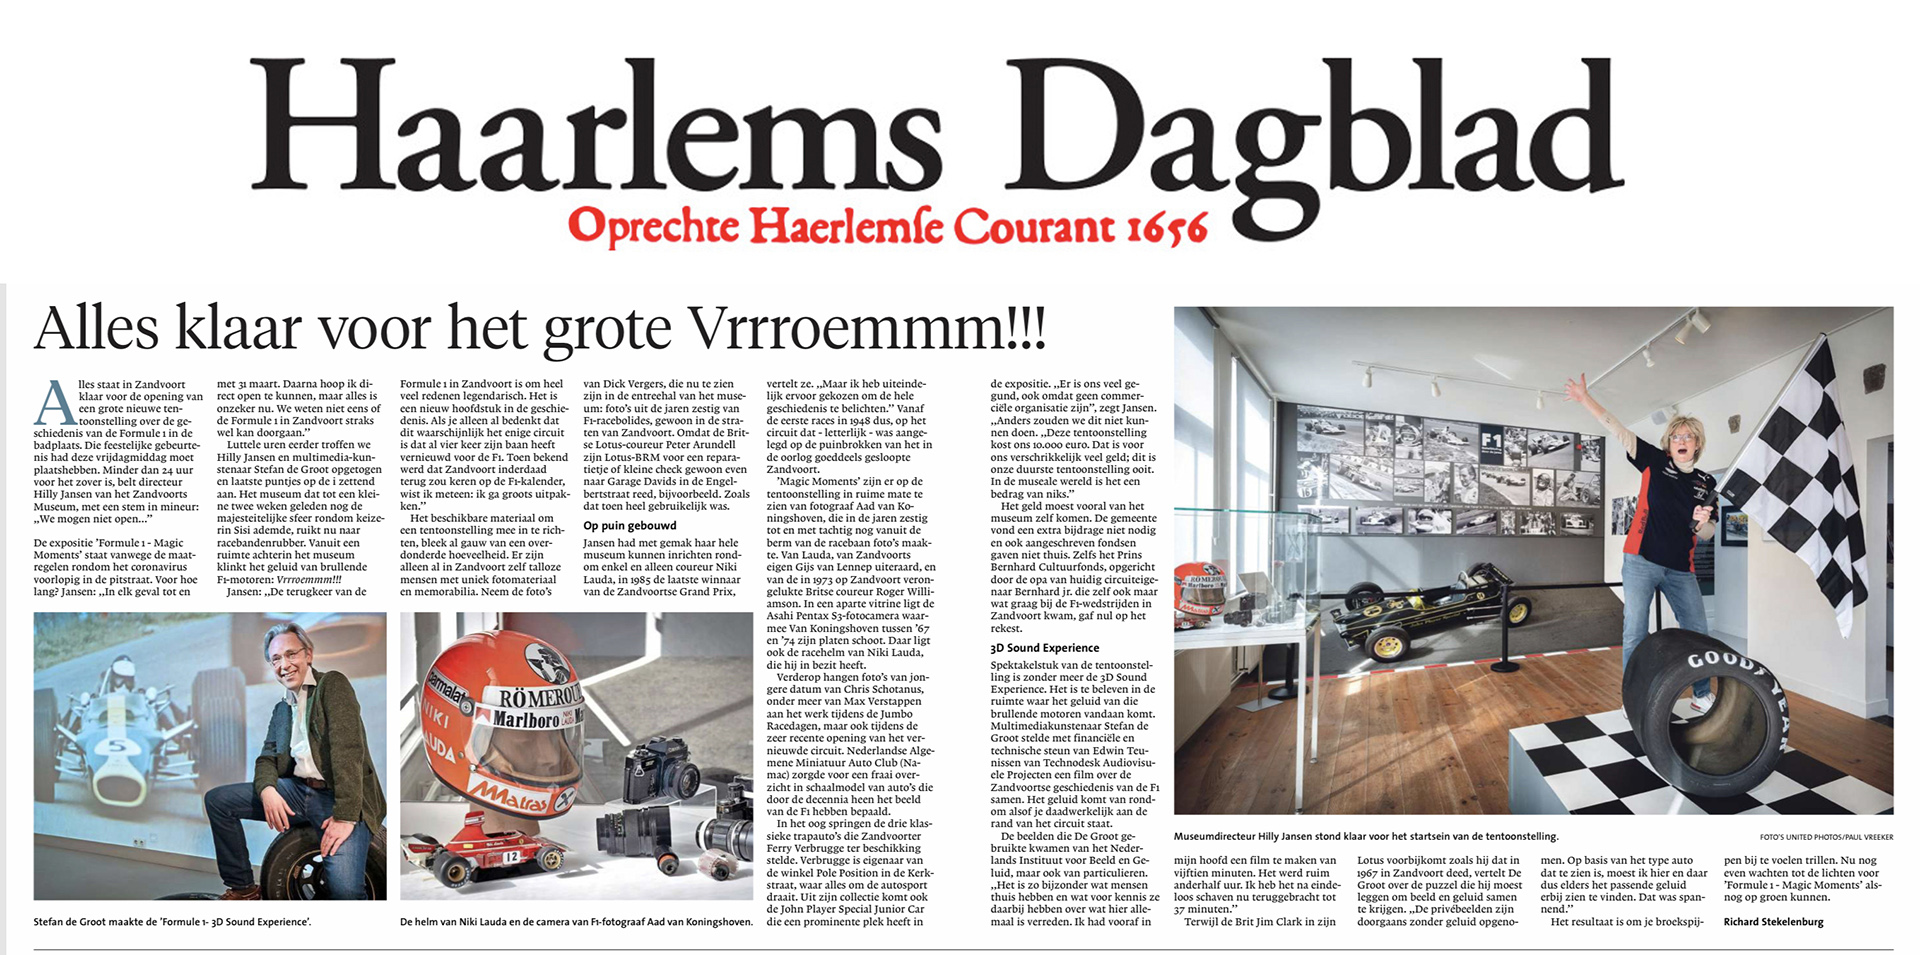 Haarlems Dagblad interview Stefan de Groot